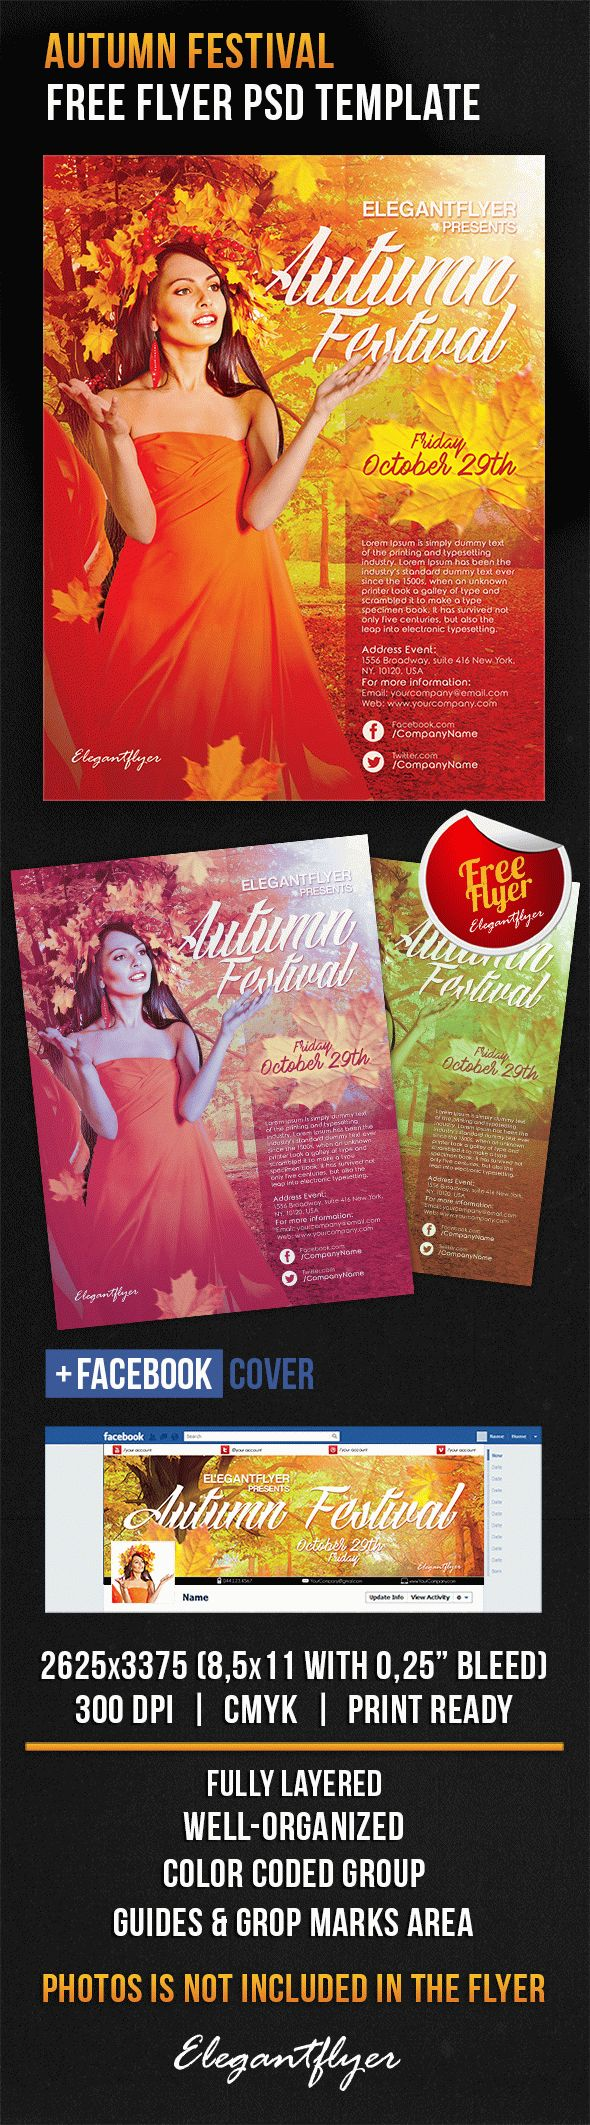 Autumn Festival – Free Flyer PSD Template + Facebook Cover